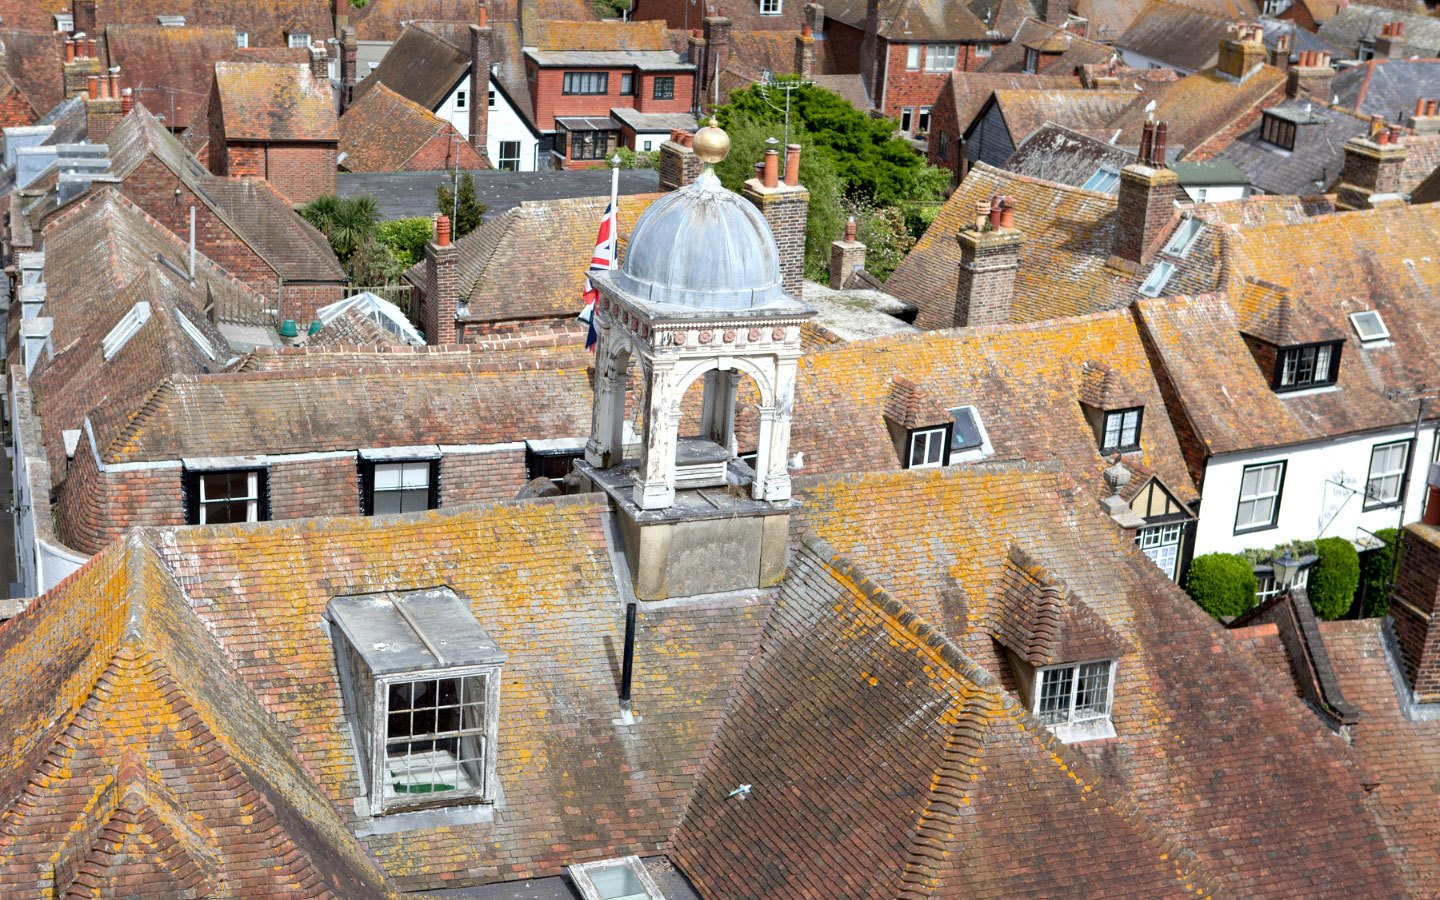 View of Rye from the tower of St Mary's Church